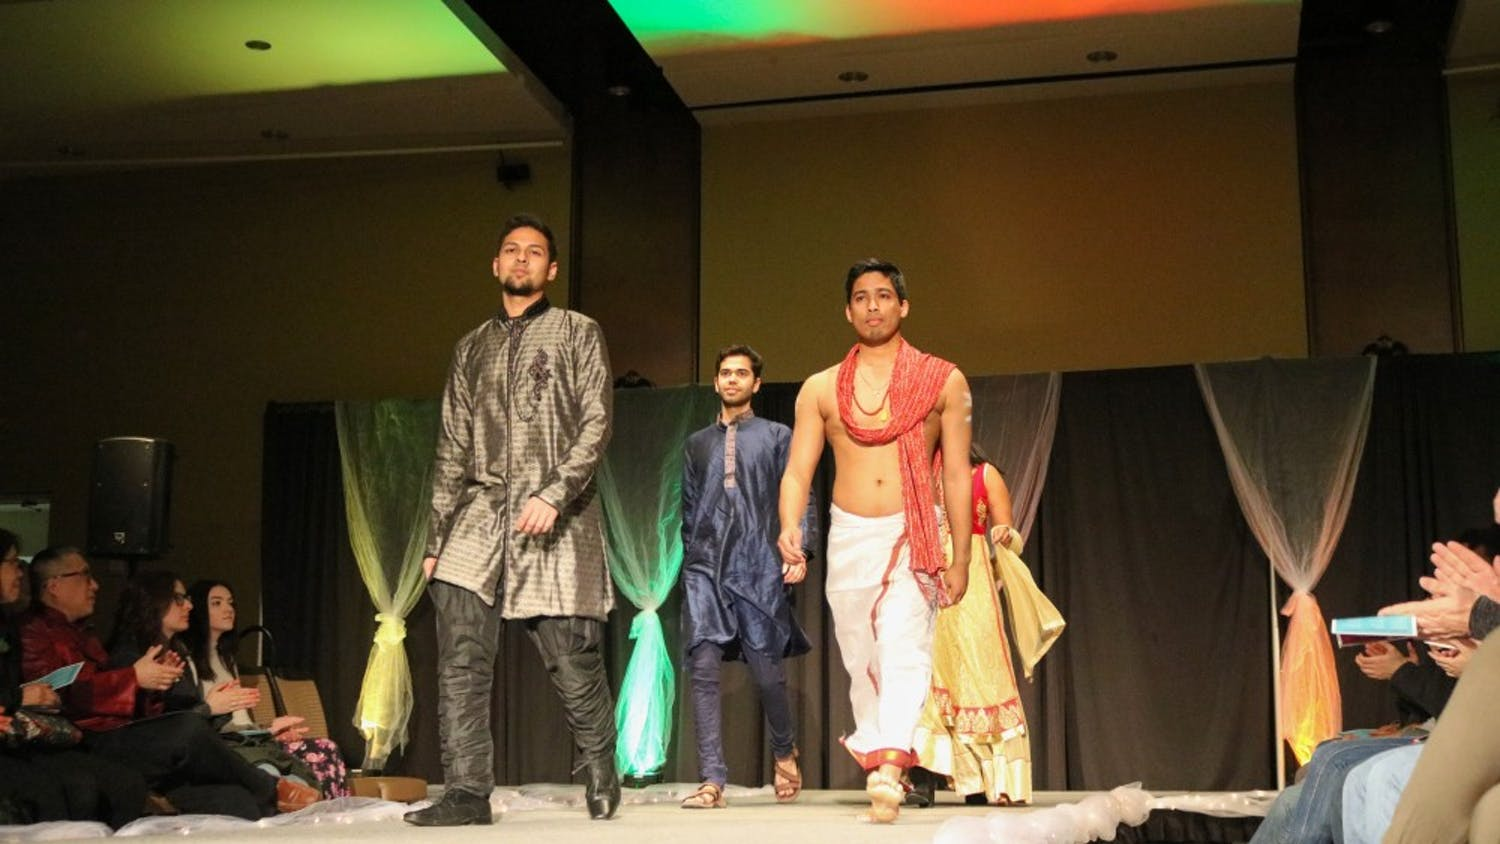 A diverse range of cultures were on display at the WUD Global Connections Multicultural Fashion show on Sunday.